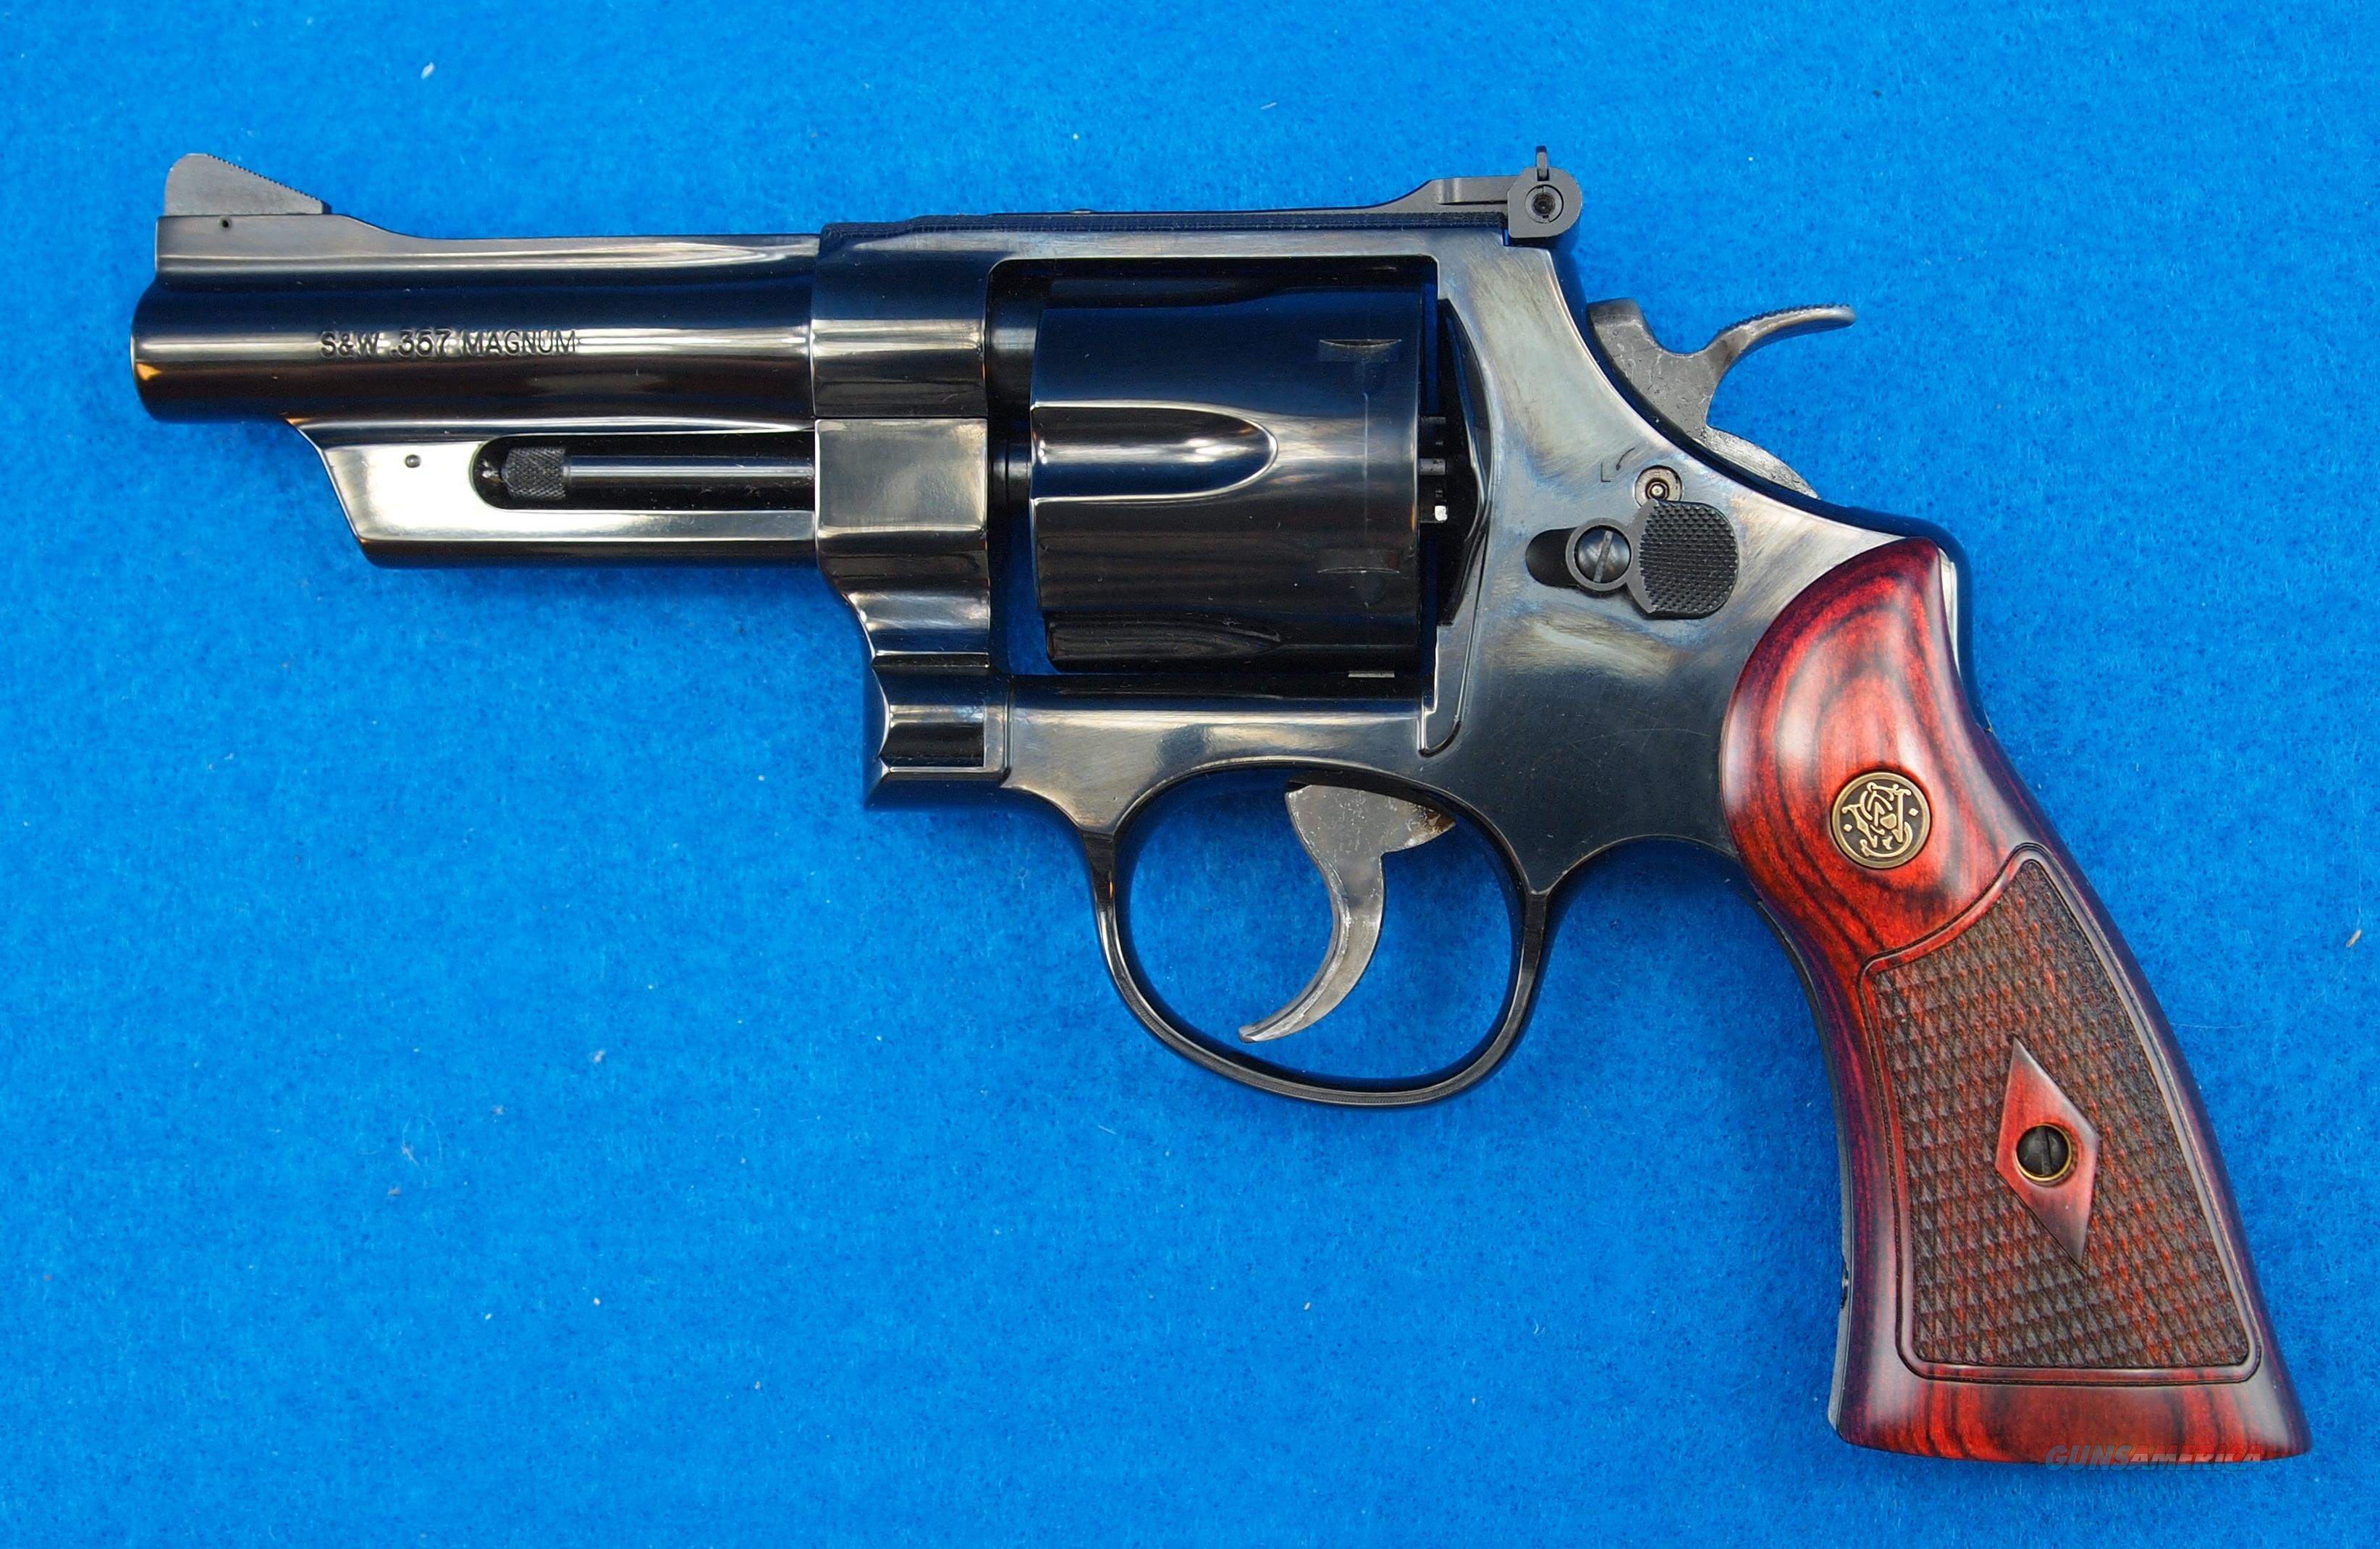 SMITH AND WESSON MODEL 27-9 .357 MAGNUM REVOLVER  Guns > Pistols > Smith & Wesson Revolvers > Full Frame Revolver